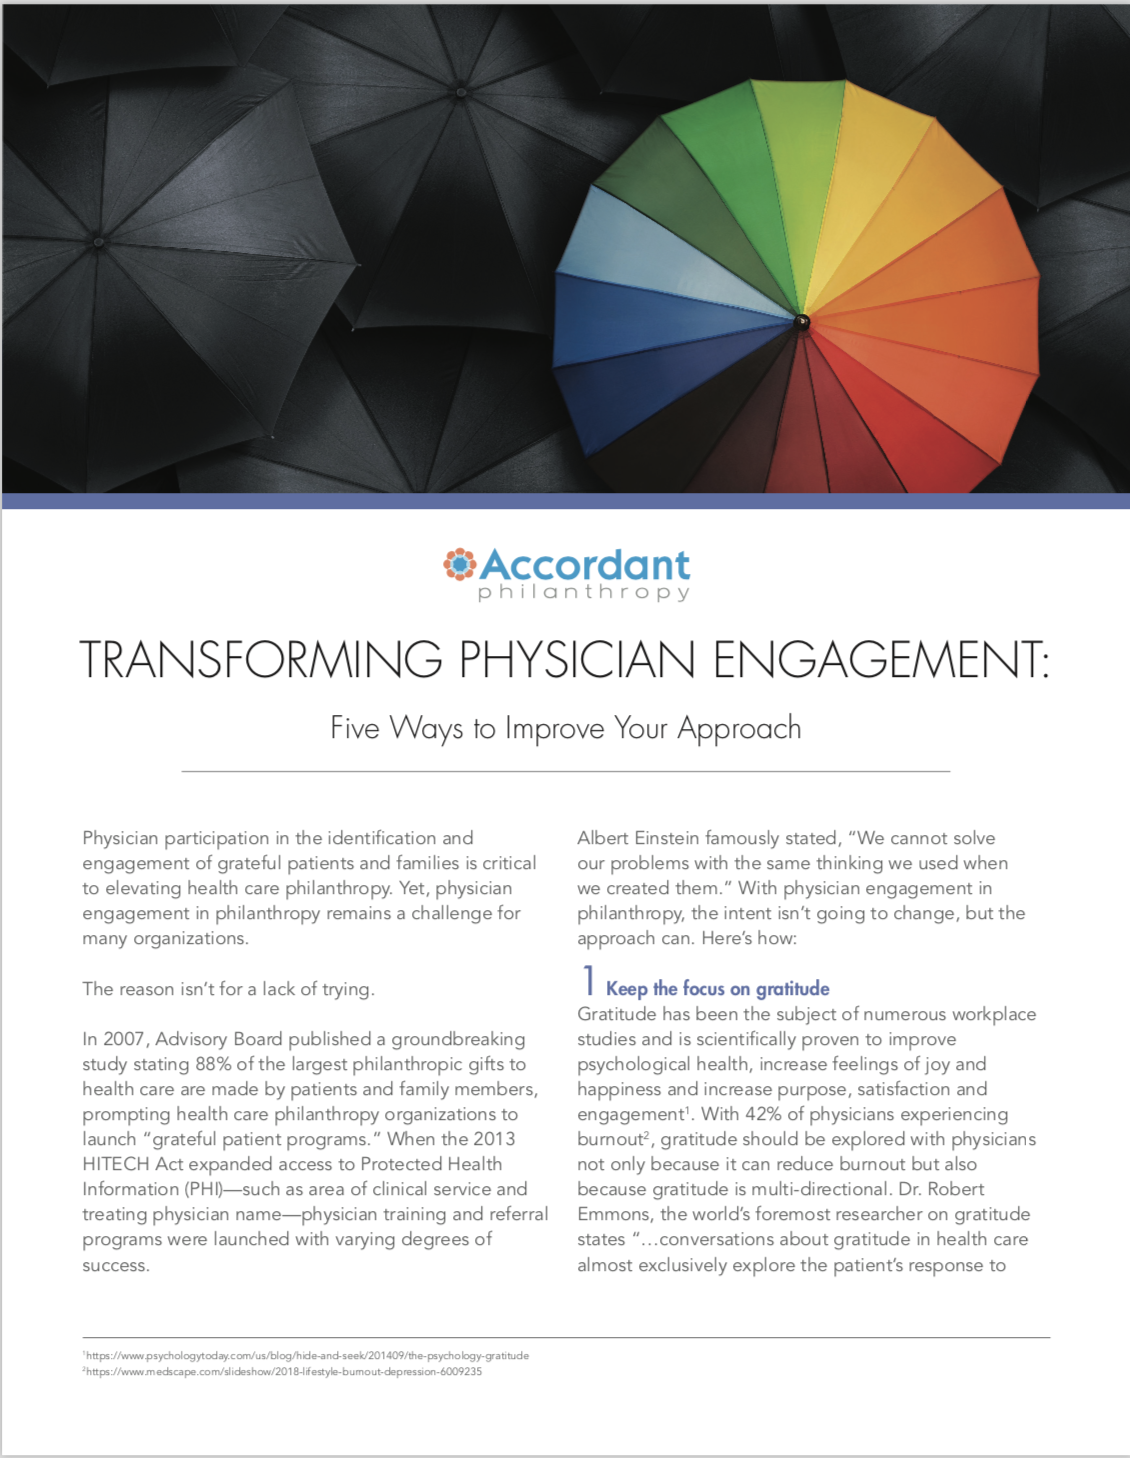 Transforming Physician Engagement